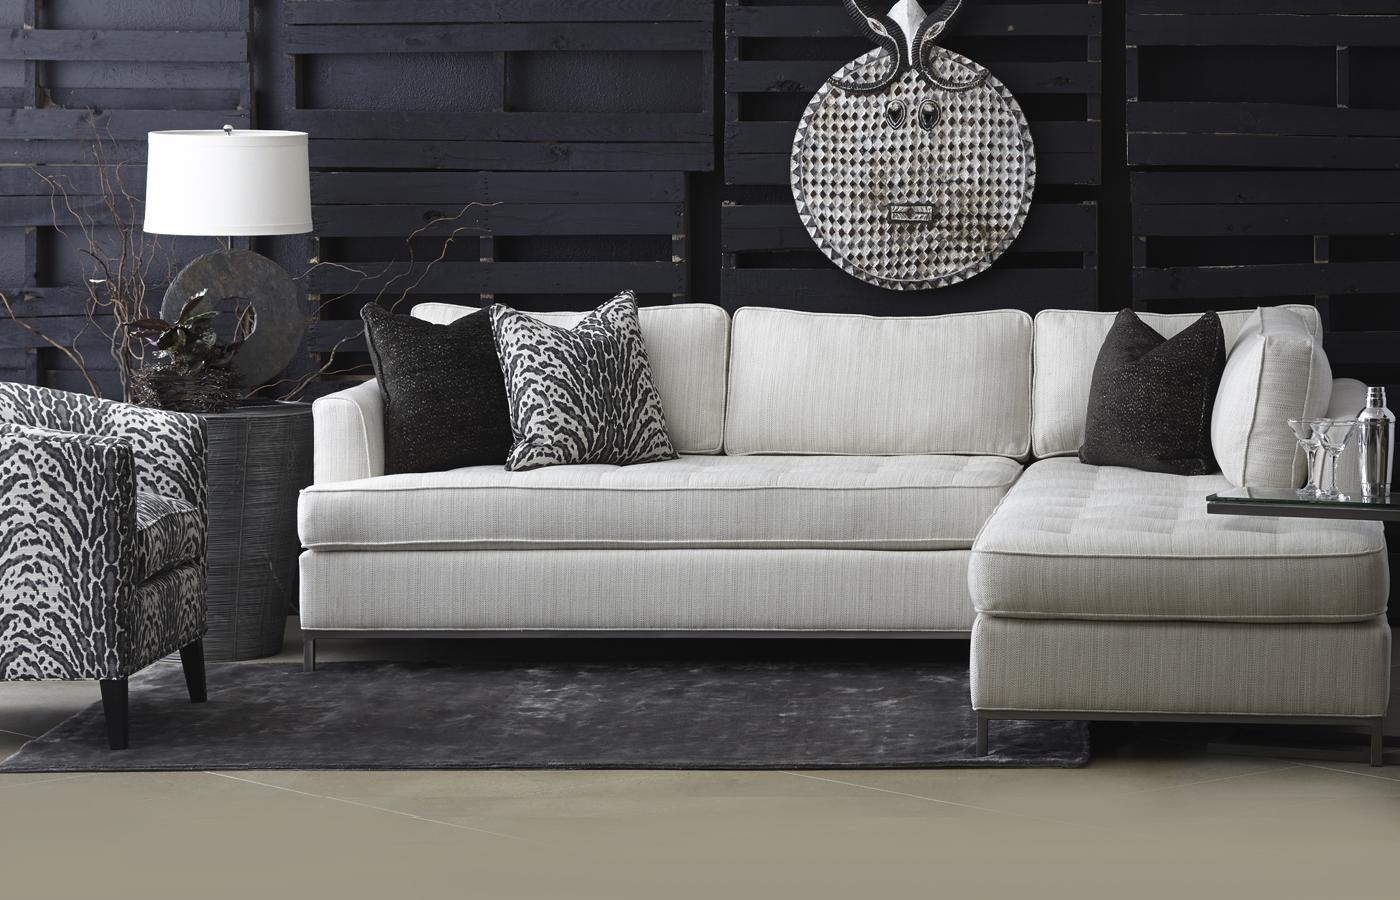 Chair Norwalk Furniture And Design Lexington Kentucky Sofa Chair With Regard To Norwalk Sofa And Chairs (Image 4 of 20)